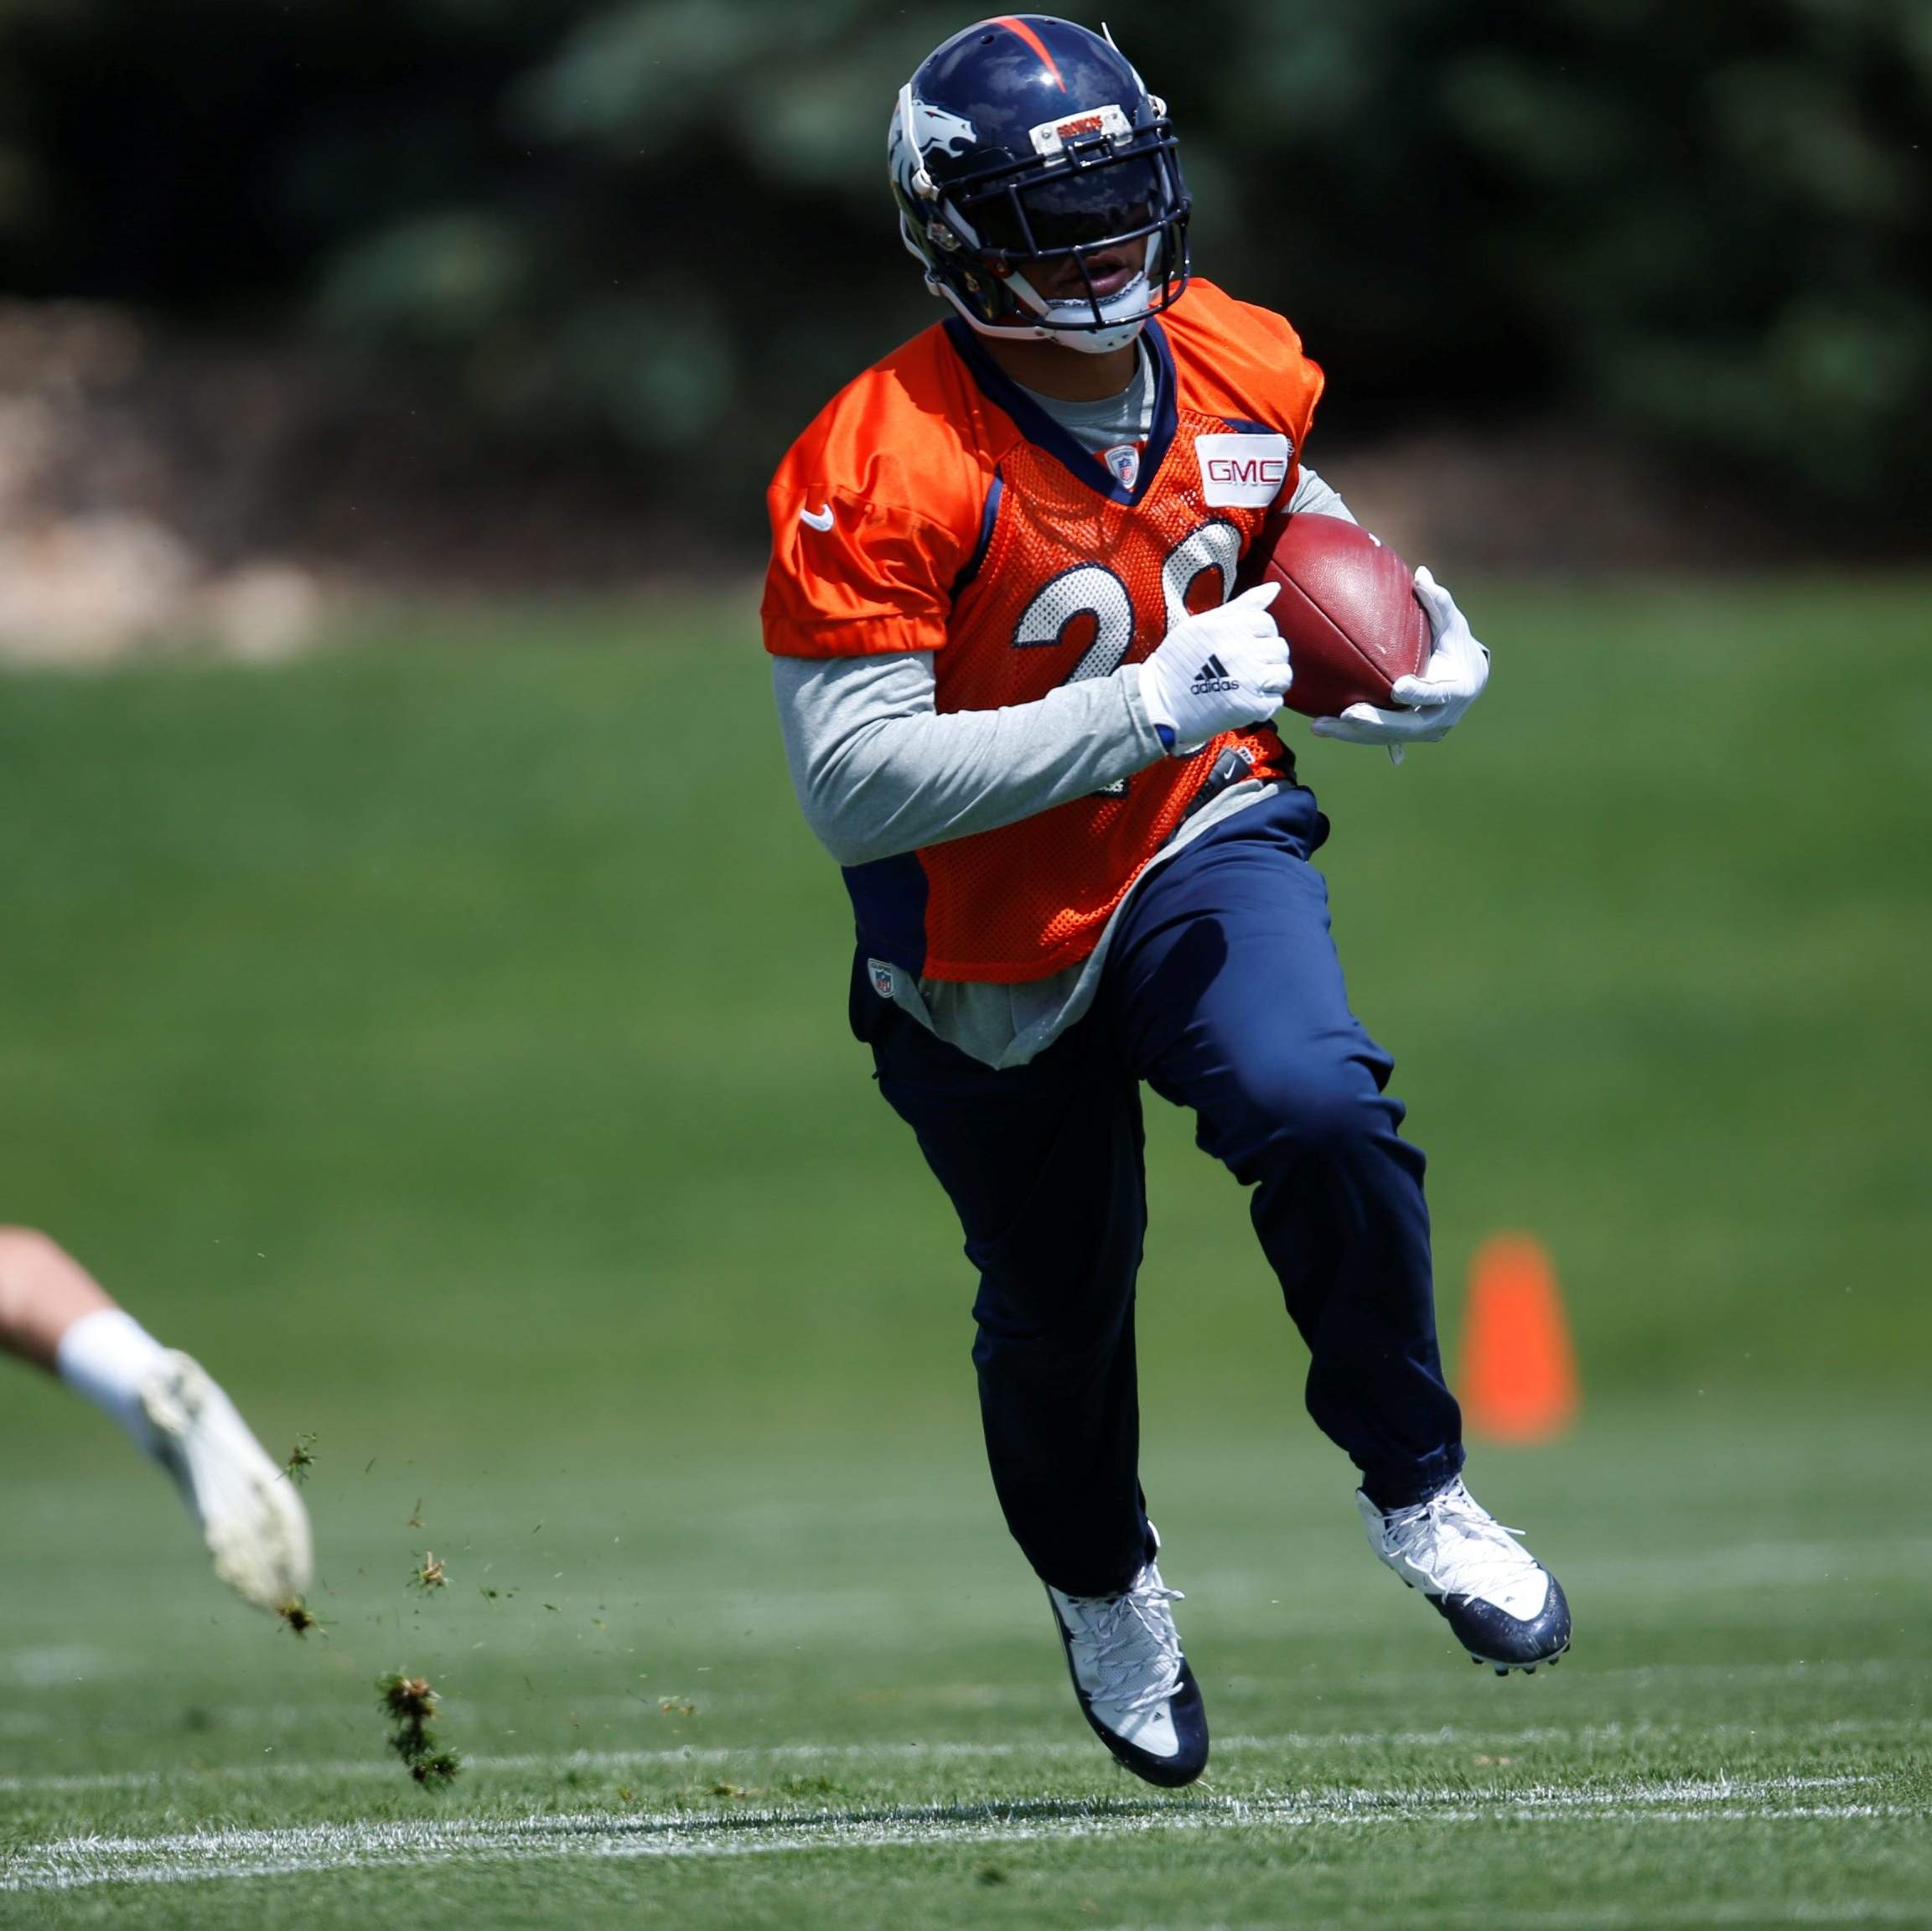 Denver Shooting Devon: Broncos Lose Running Back Devontae Booker To Wrist Injury